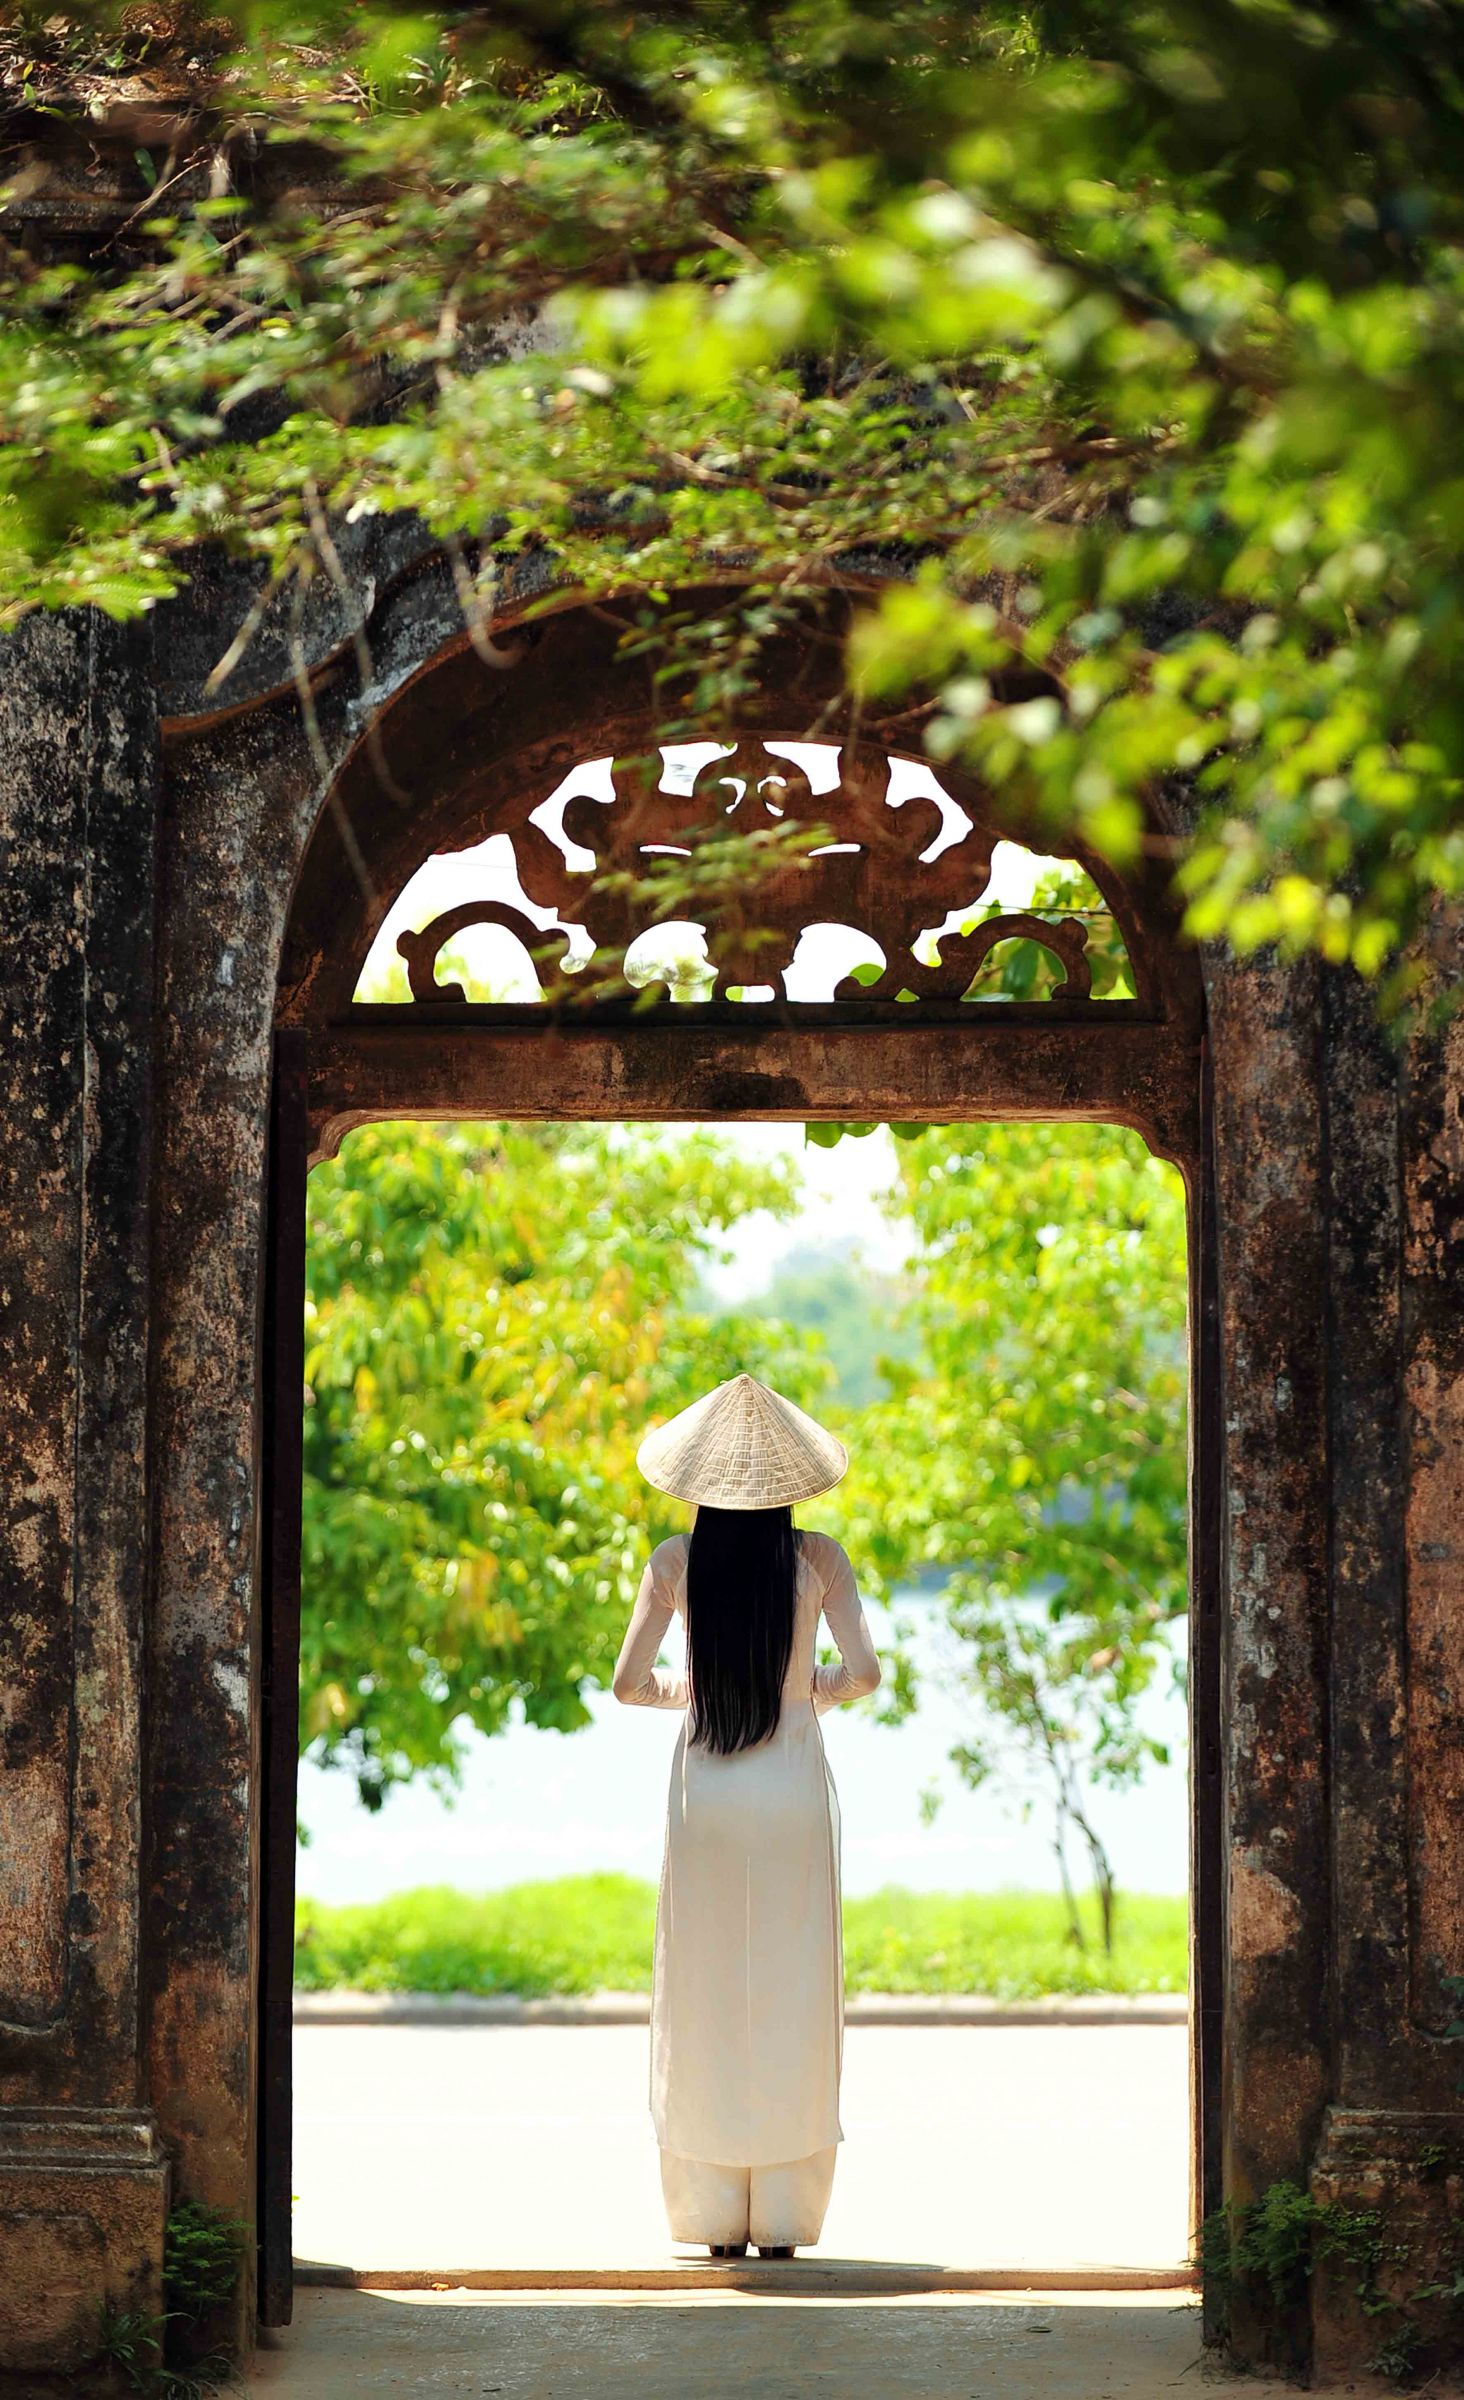 A girl in Hue's autumn